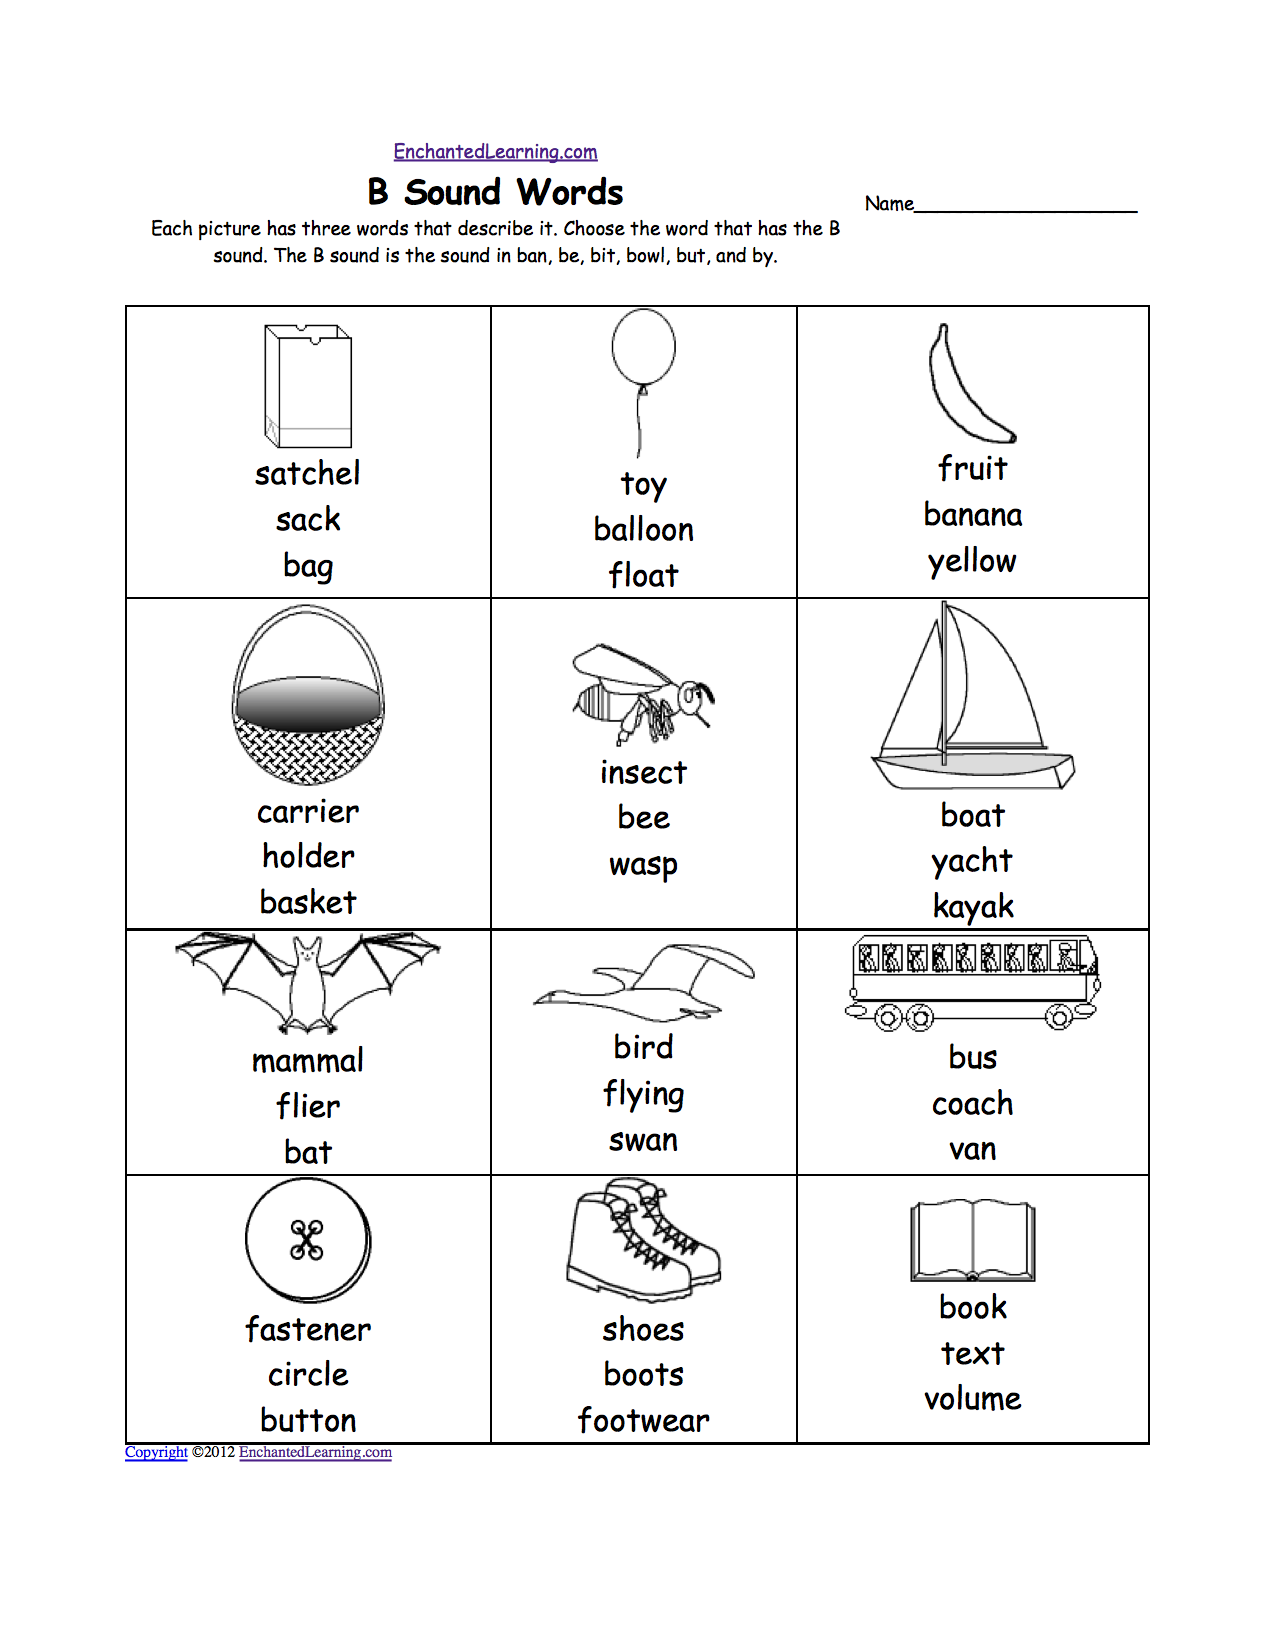 Weirdmailus  Remarkable Phonics Worksheets Multiple Choice Worksheets To Print  With Likable Quotbquot Sound Phonics Worksheet Multiple Choice Each Picture Has Three Words That Describe It Choose The Word That Has A Quotbquot Sound The Quotbquot Sound Is The Sound  With Cool Adding And Subtracting Rational Expressions Worksheet With Answers Also Self Help Worksheets In Addition Irs Credit Limit Worksheet And Th Grade Math Review Worksheets As Well As Free Printable Subtraction Worksheets Additionally Find The Missing Angle Worksheet From Enchantedlearningcom With Weirdmailus  Likable Phonics Worksheets Multiple Choice Worksheets To Print  With Cool Quotbquot Sound Phonics Worksheet Multiple Choice Each Picture Has Three Words That Describe It Choose The Word That Has A Quotbquot Sound The Quotbquot Sound Is The Sound  And Remarkable Adding And Subtracting Rational Expressions Worksheet With Answers Also Self Help Worksheets In Addition Irs Credit Limit Worksheet From Enchantedlearningcom